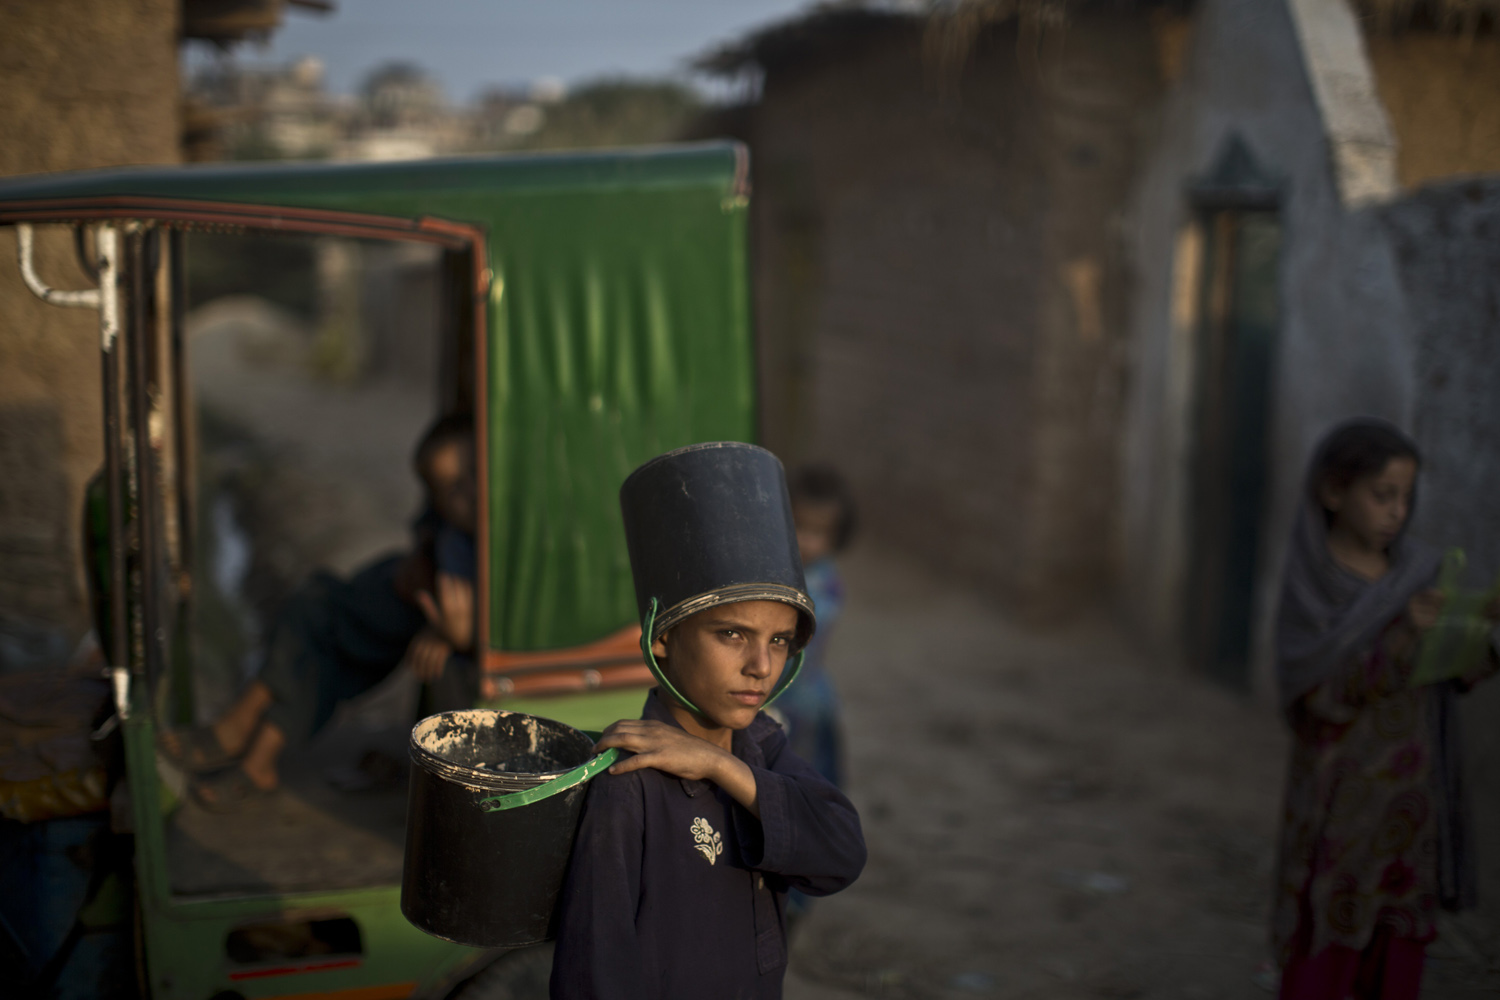 Oct. 7, 2013. An Afghan refugee boy wearing an empty bucket on his head, waits his turn to fetch water from a hand pump in a poor neighborhood on the outskirts of Islamabad, Pakistan.